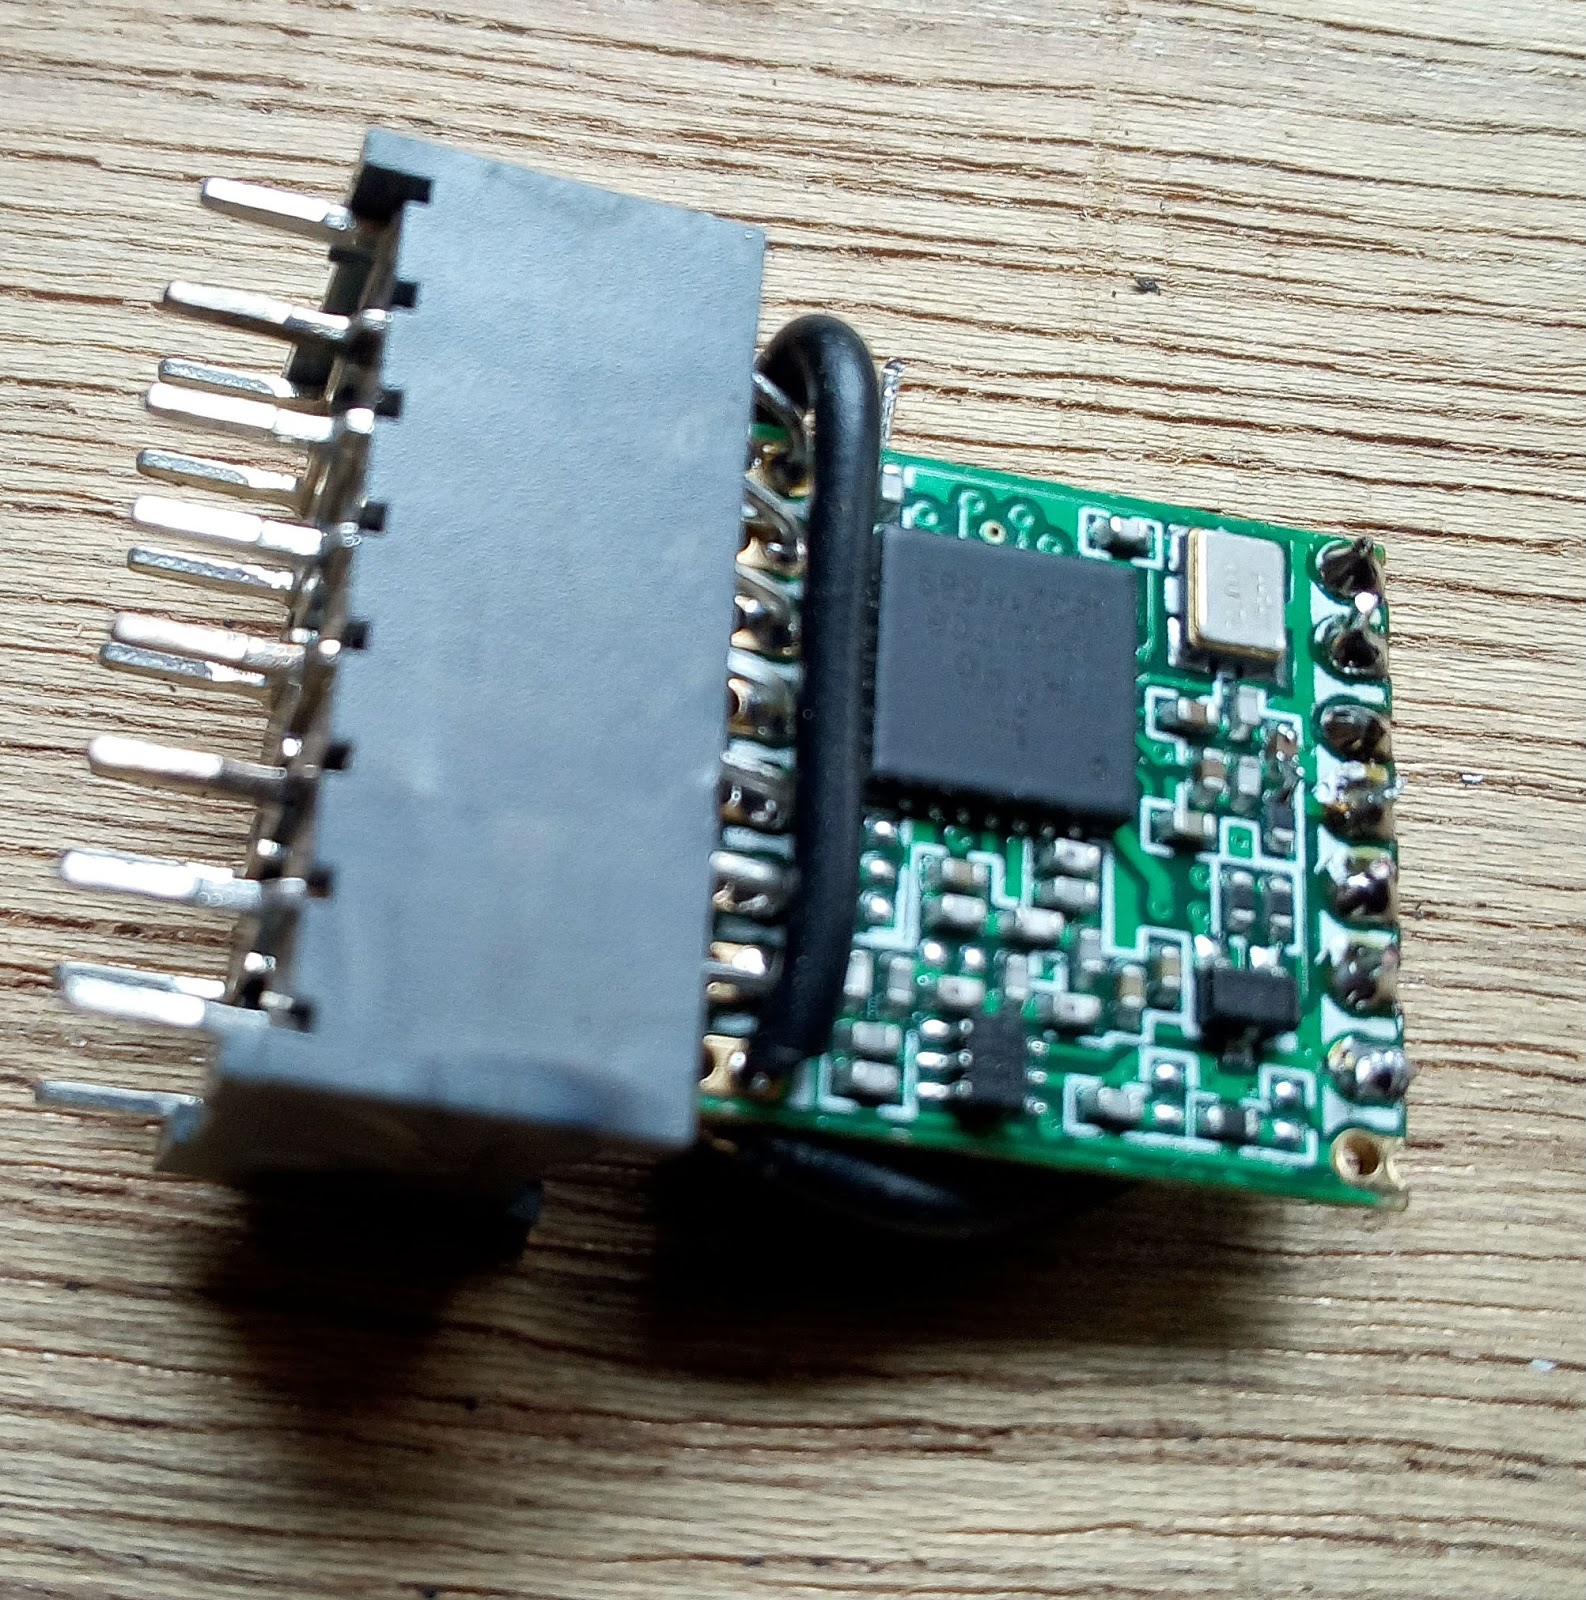 The Jeronimus Net blog: Lora RFM95 breadboard friendly